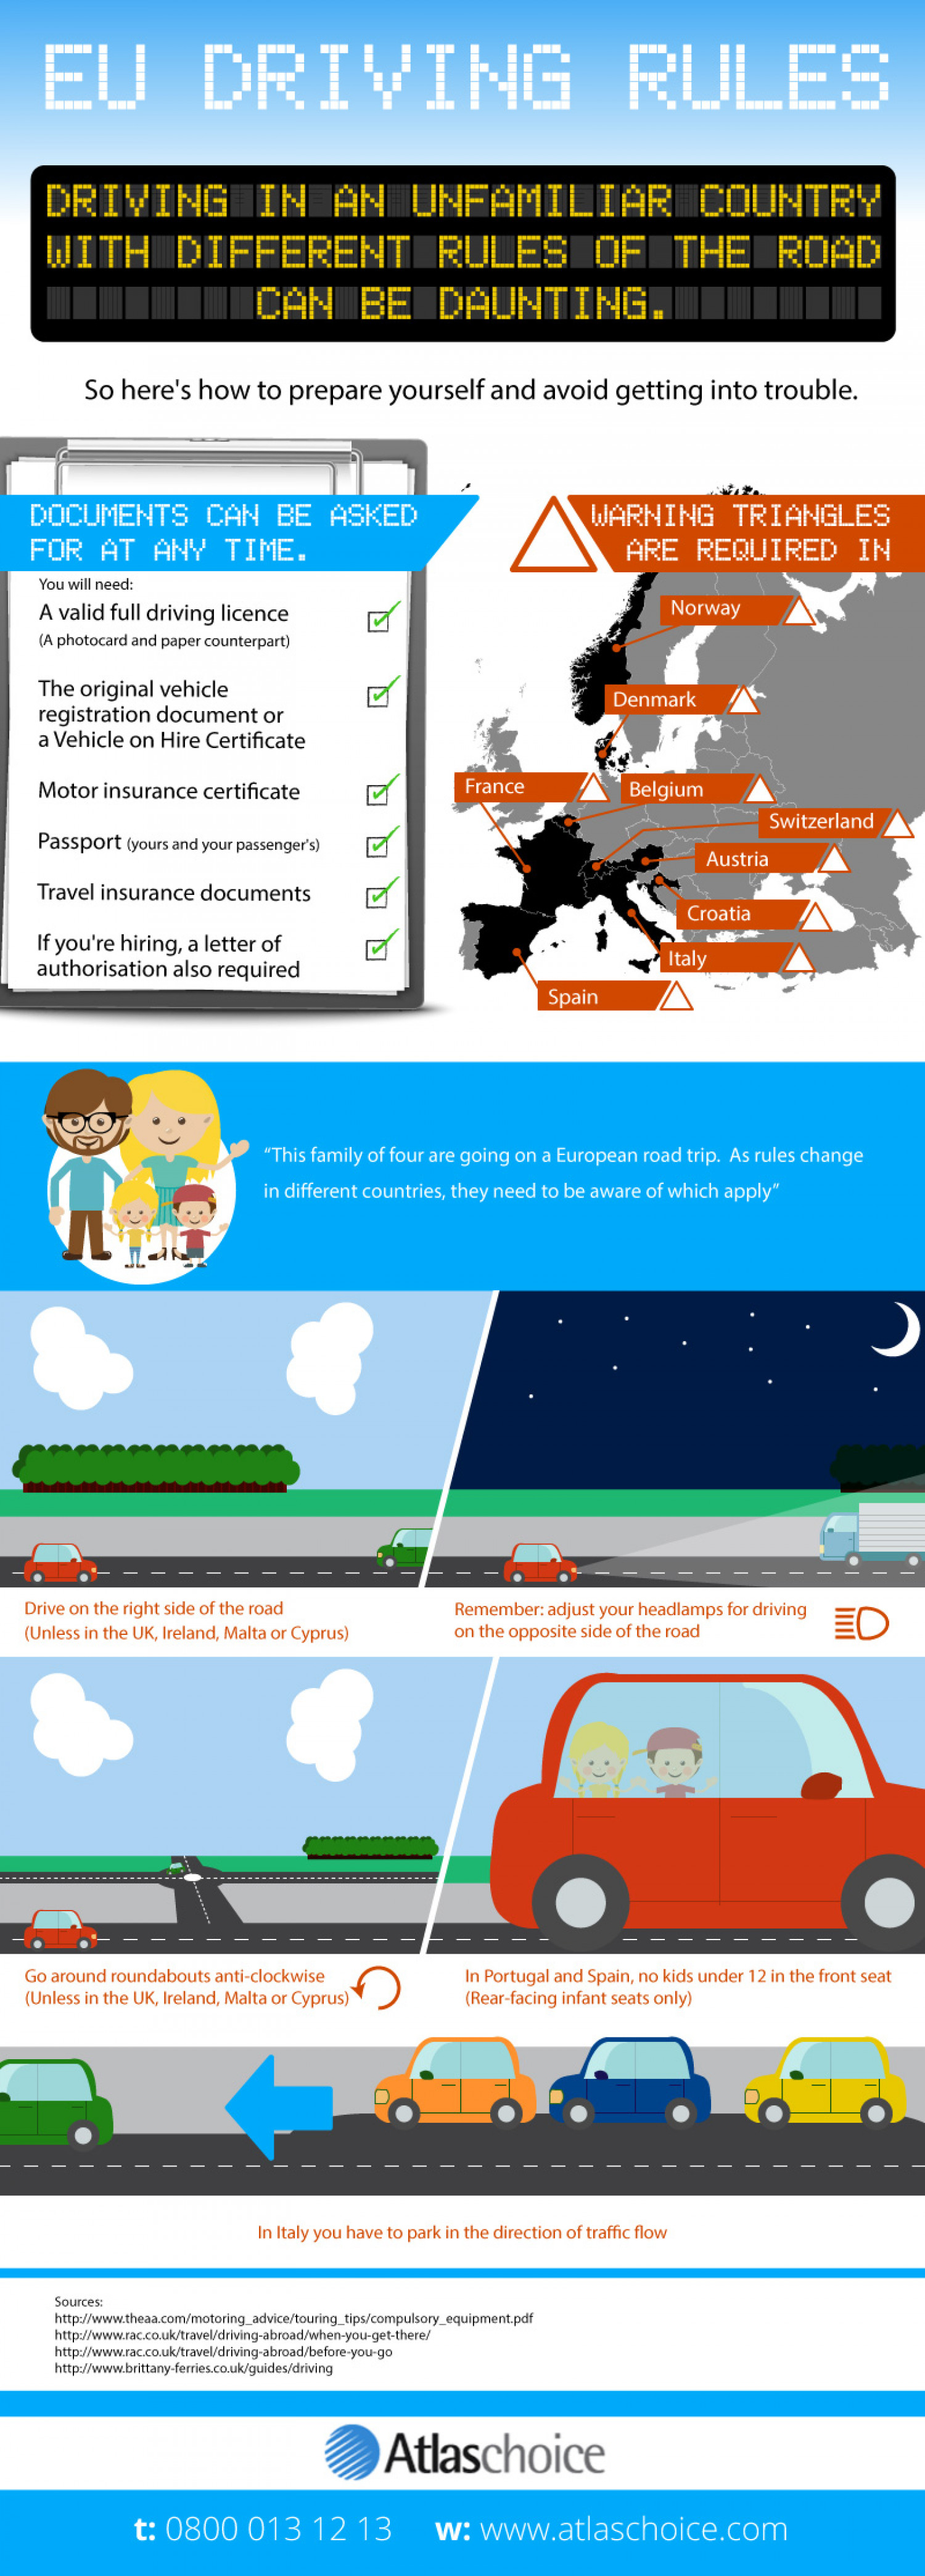 EU Driving Rules Infographic